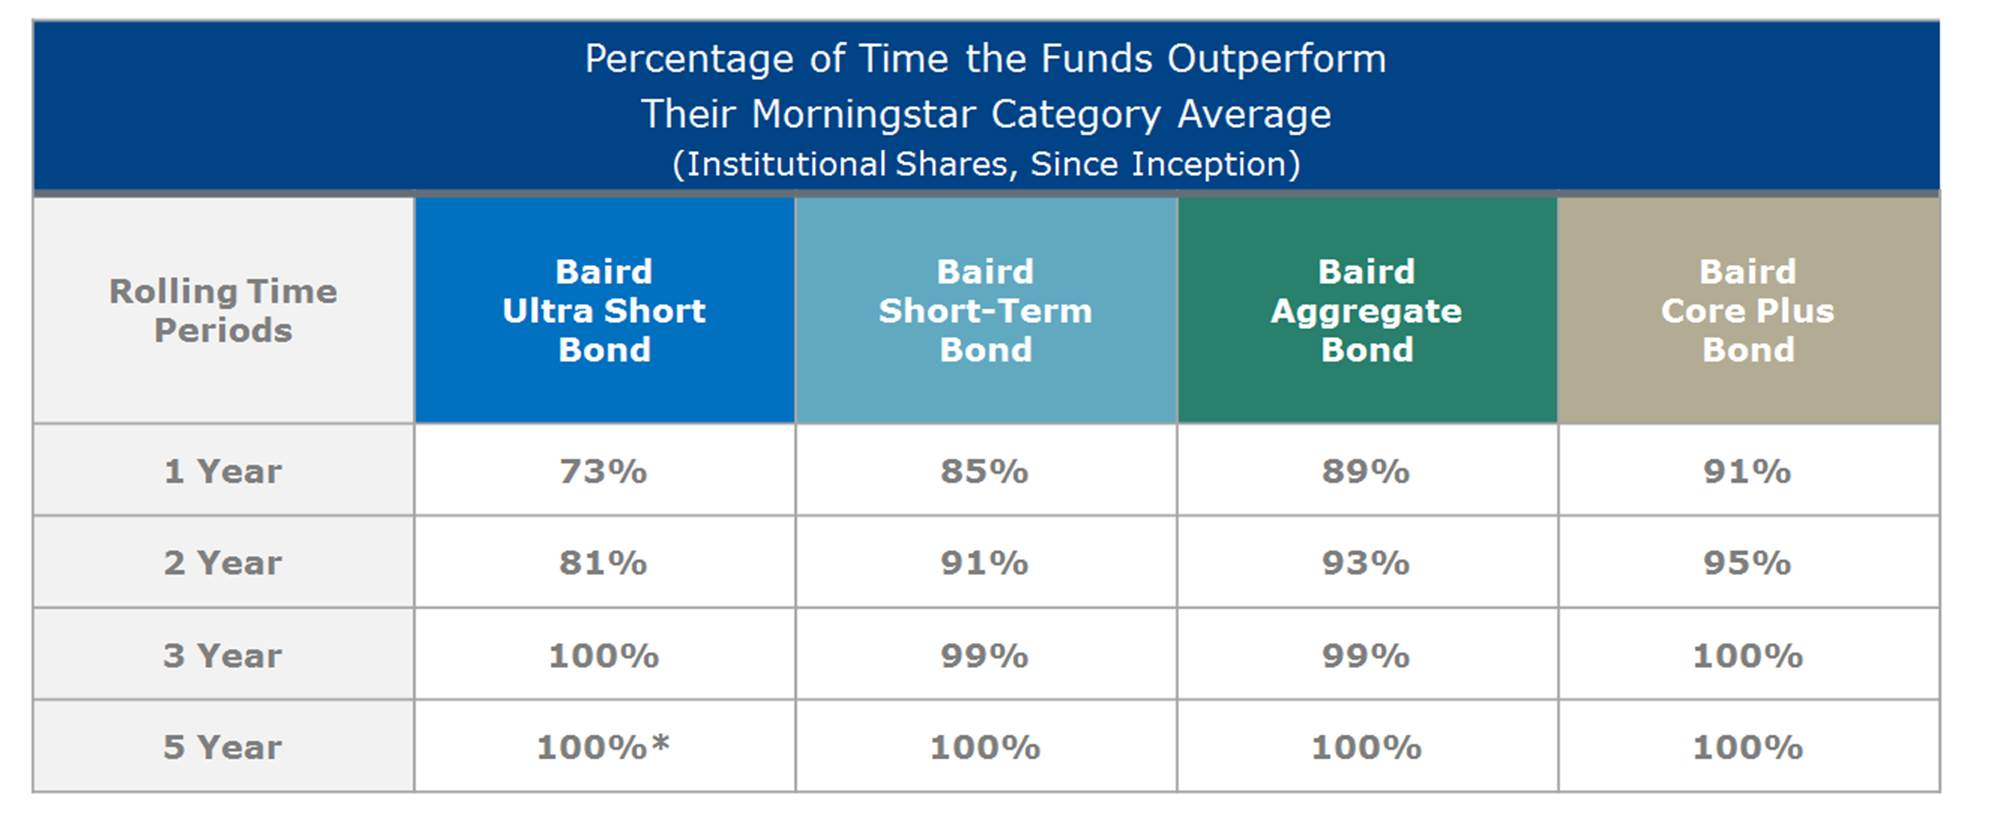 The Percentage of Time Funds Outperform